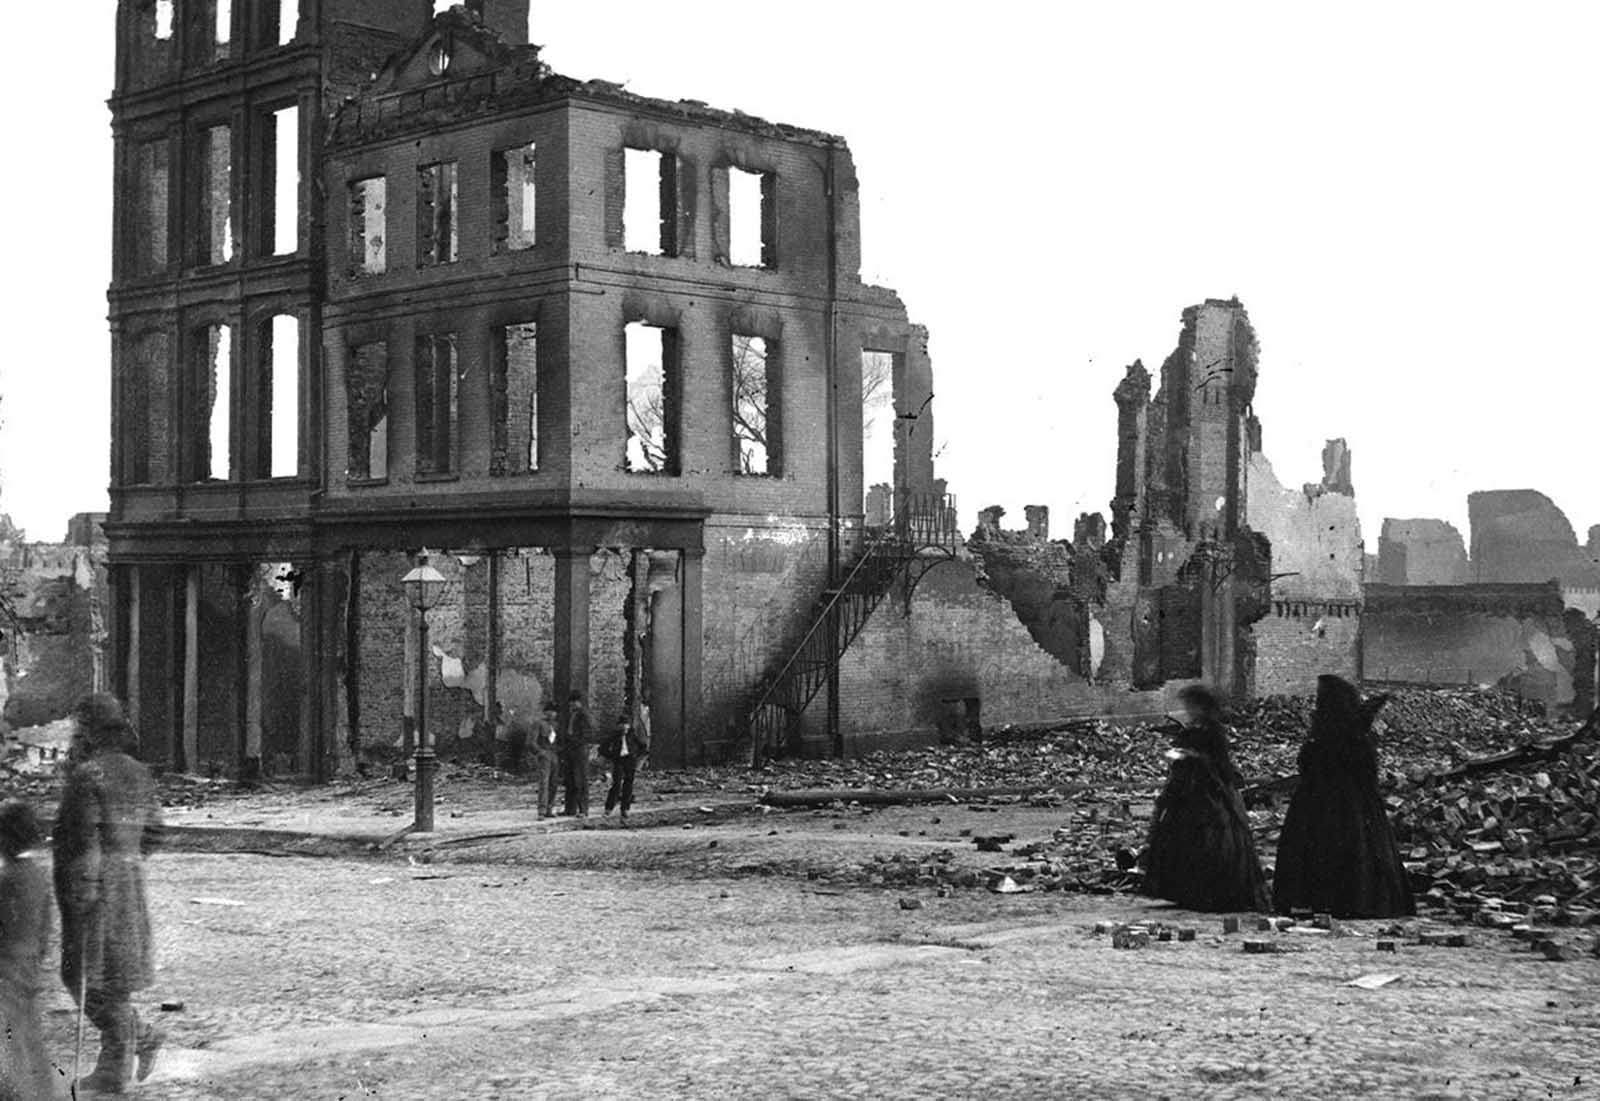 Residents walk through the ruins of Richmond, Virginia, in April of 1865. Richmond served as the capital of the Confederate States of America during the majority of the Civil War. After a long siege in 1865, with General Ulysses S. Grant's Union troops about to take the city, Confederate troops were ordered to evacuate, destroying bridges and burning supplies they they could not carry. A massive fire swept through Richmond, destroying large parts of the city. About one week after the evacuation of Richmond, Gen. Robert E. Lee surrendered to Grant in near Appomattox, Virginia, on April 9, 1865.